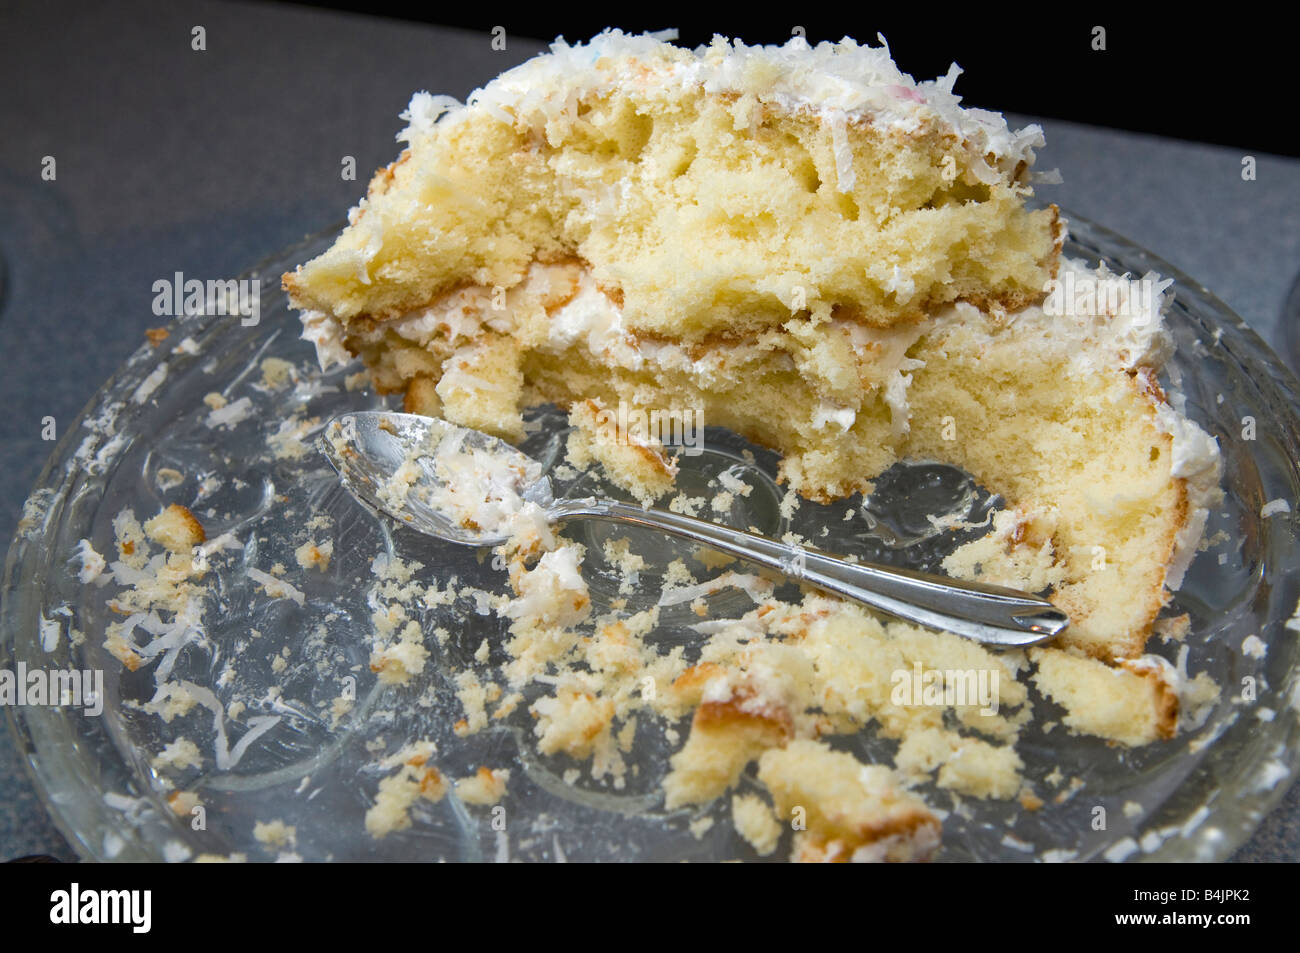 Images Of Eaten Birthday Cake : Half eaten birthday cake-- you canot have your cake and ...